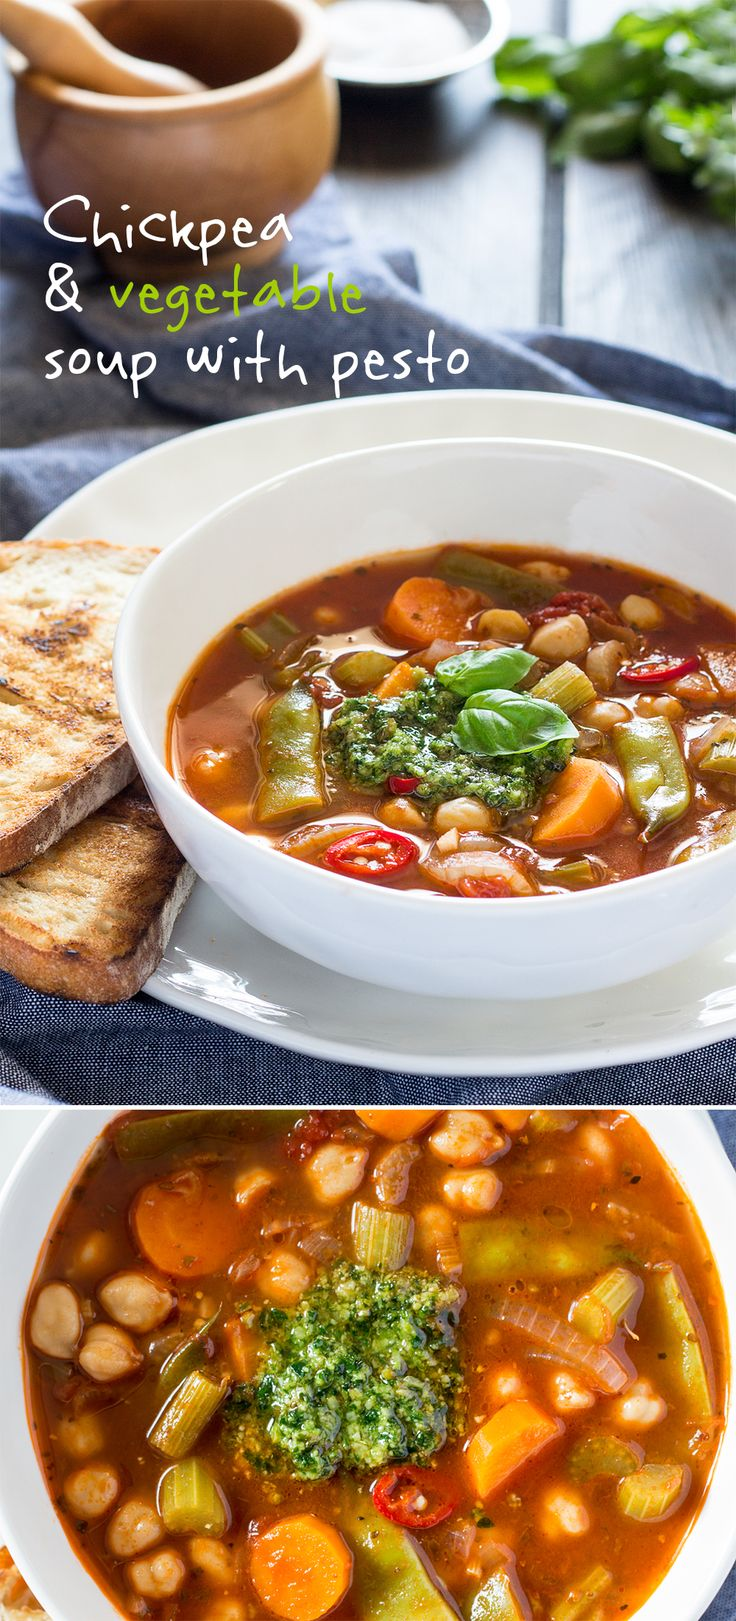 Chickpea and Vegetable Soup with Pesto